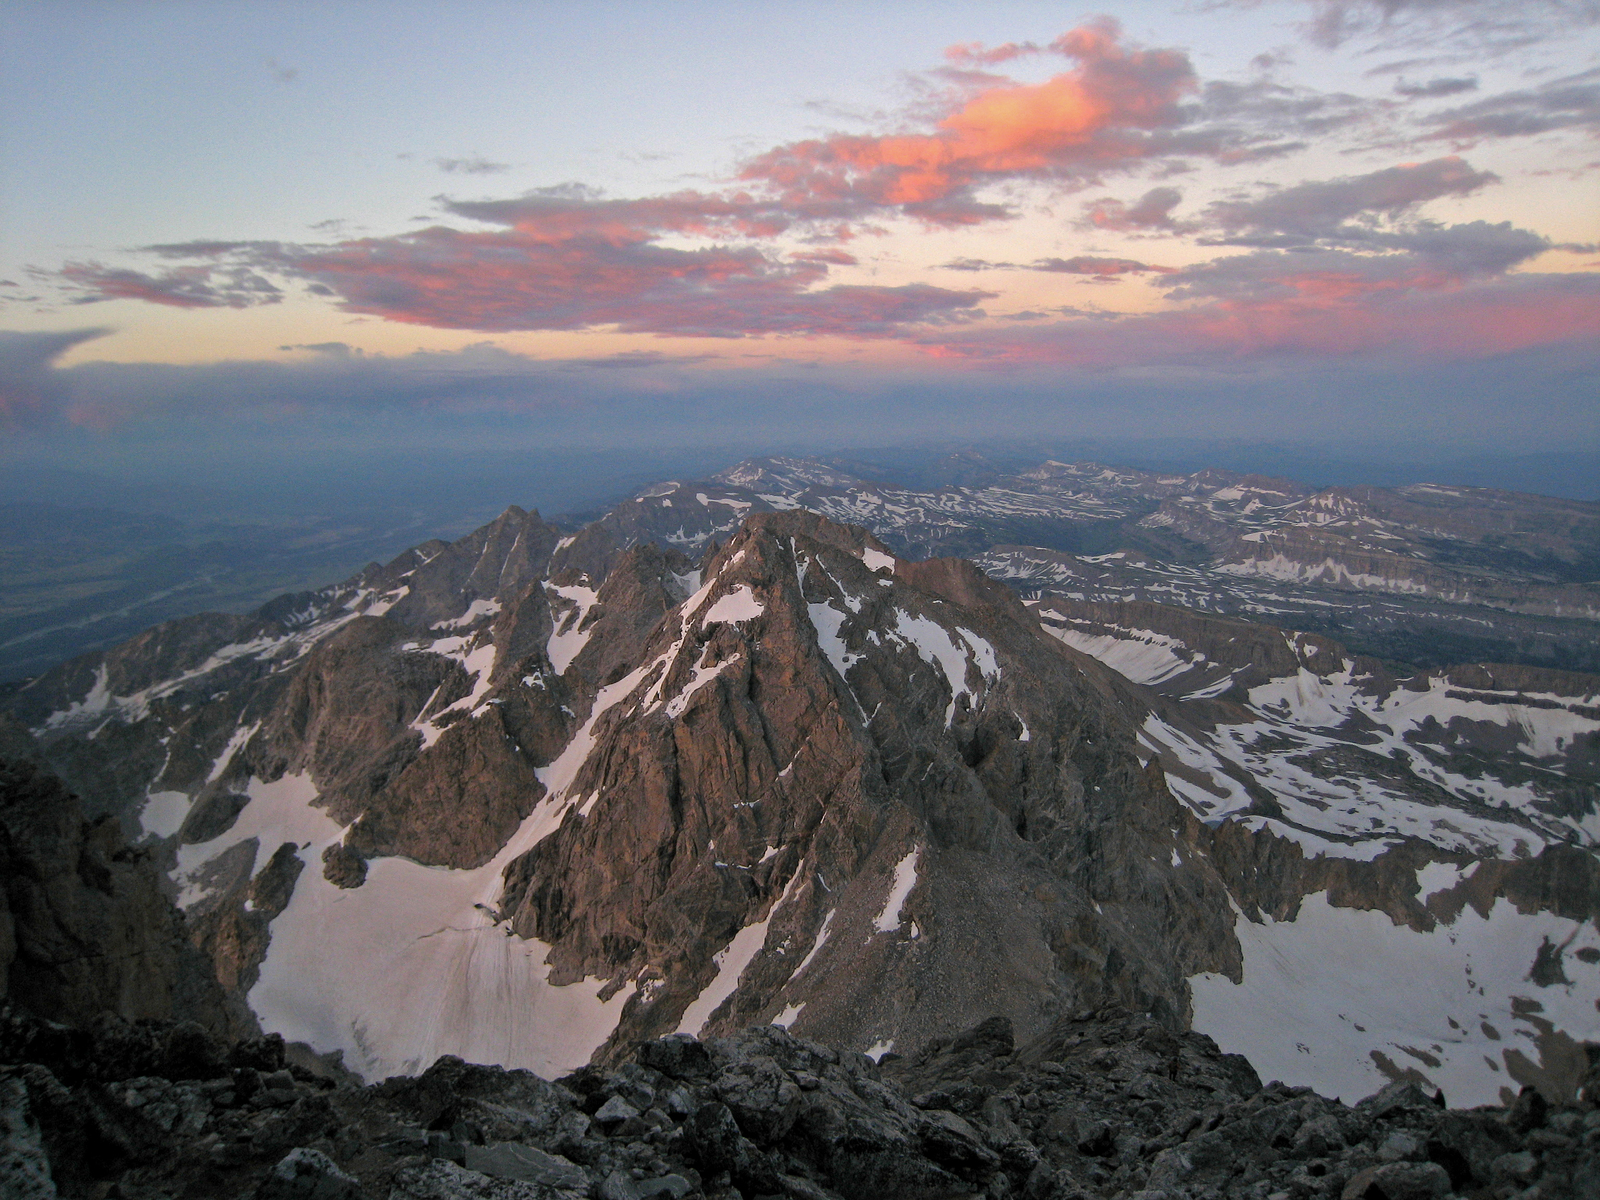 looking south from the Grand Teton, Grand Teton National Park, Wyoming